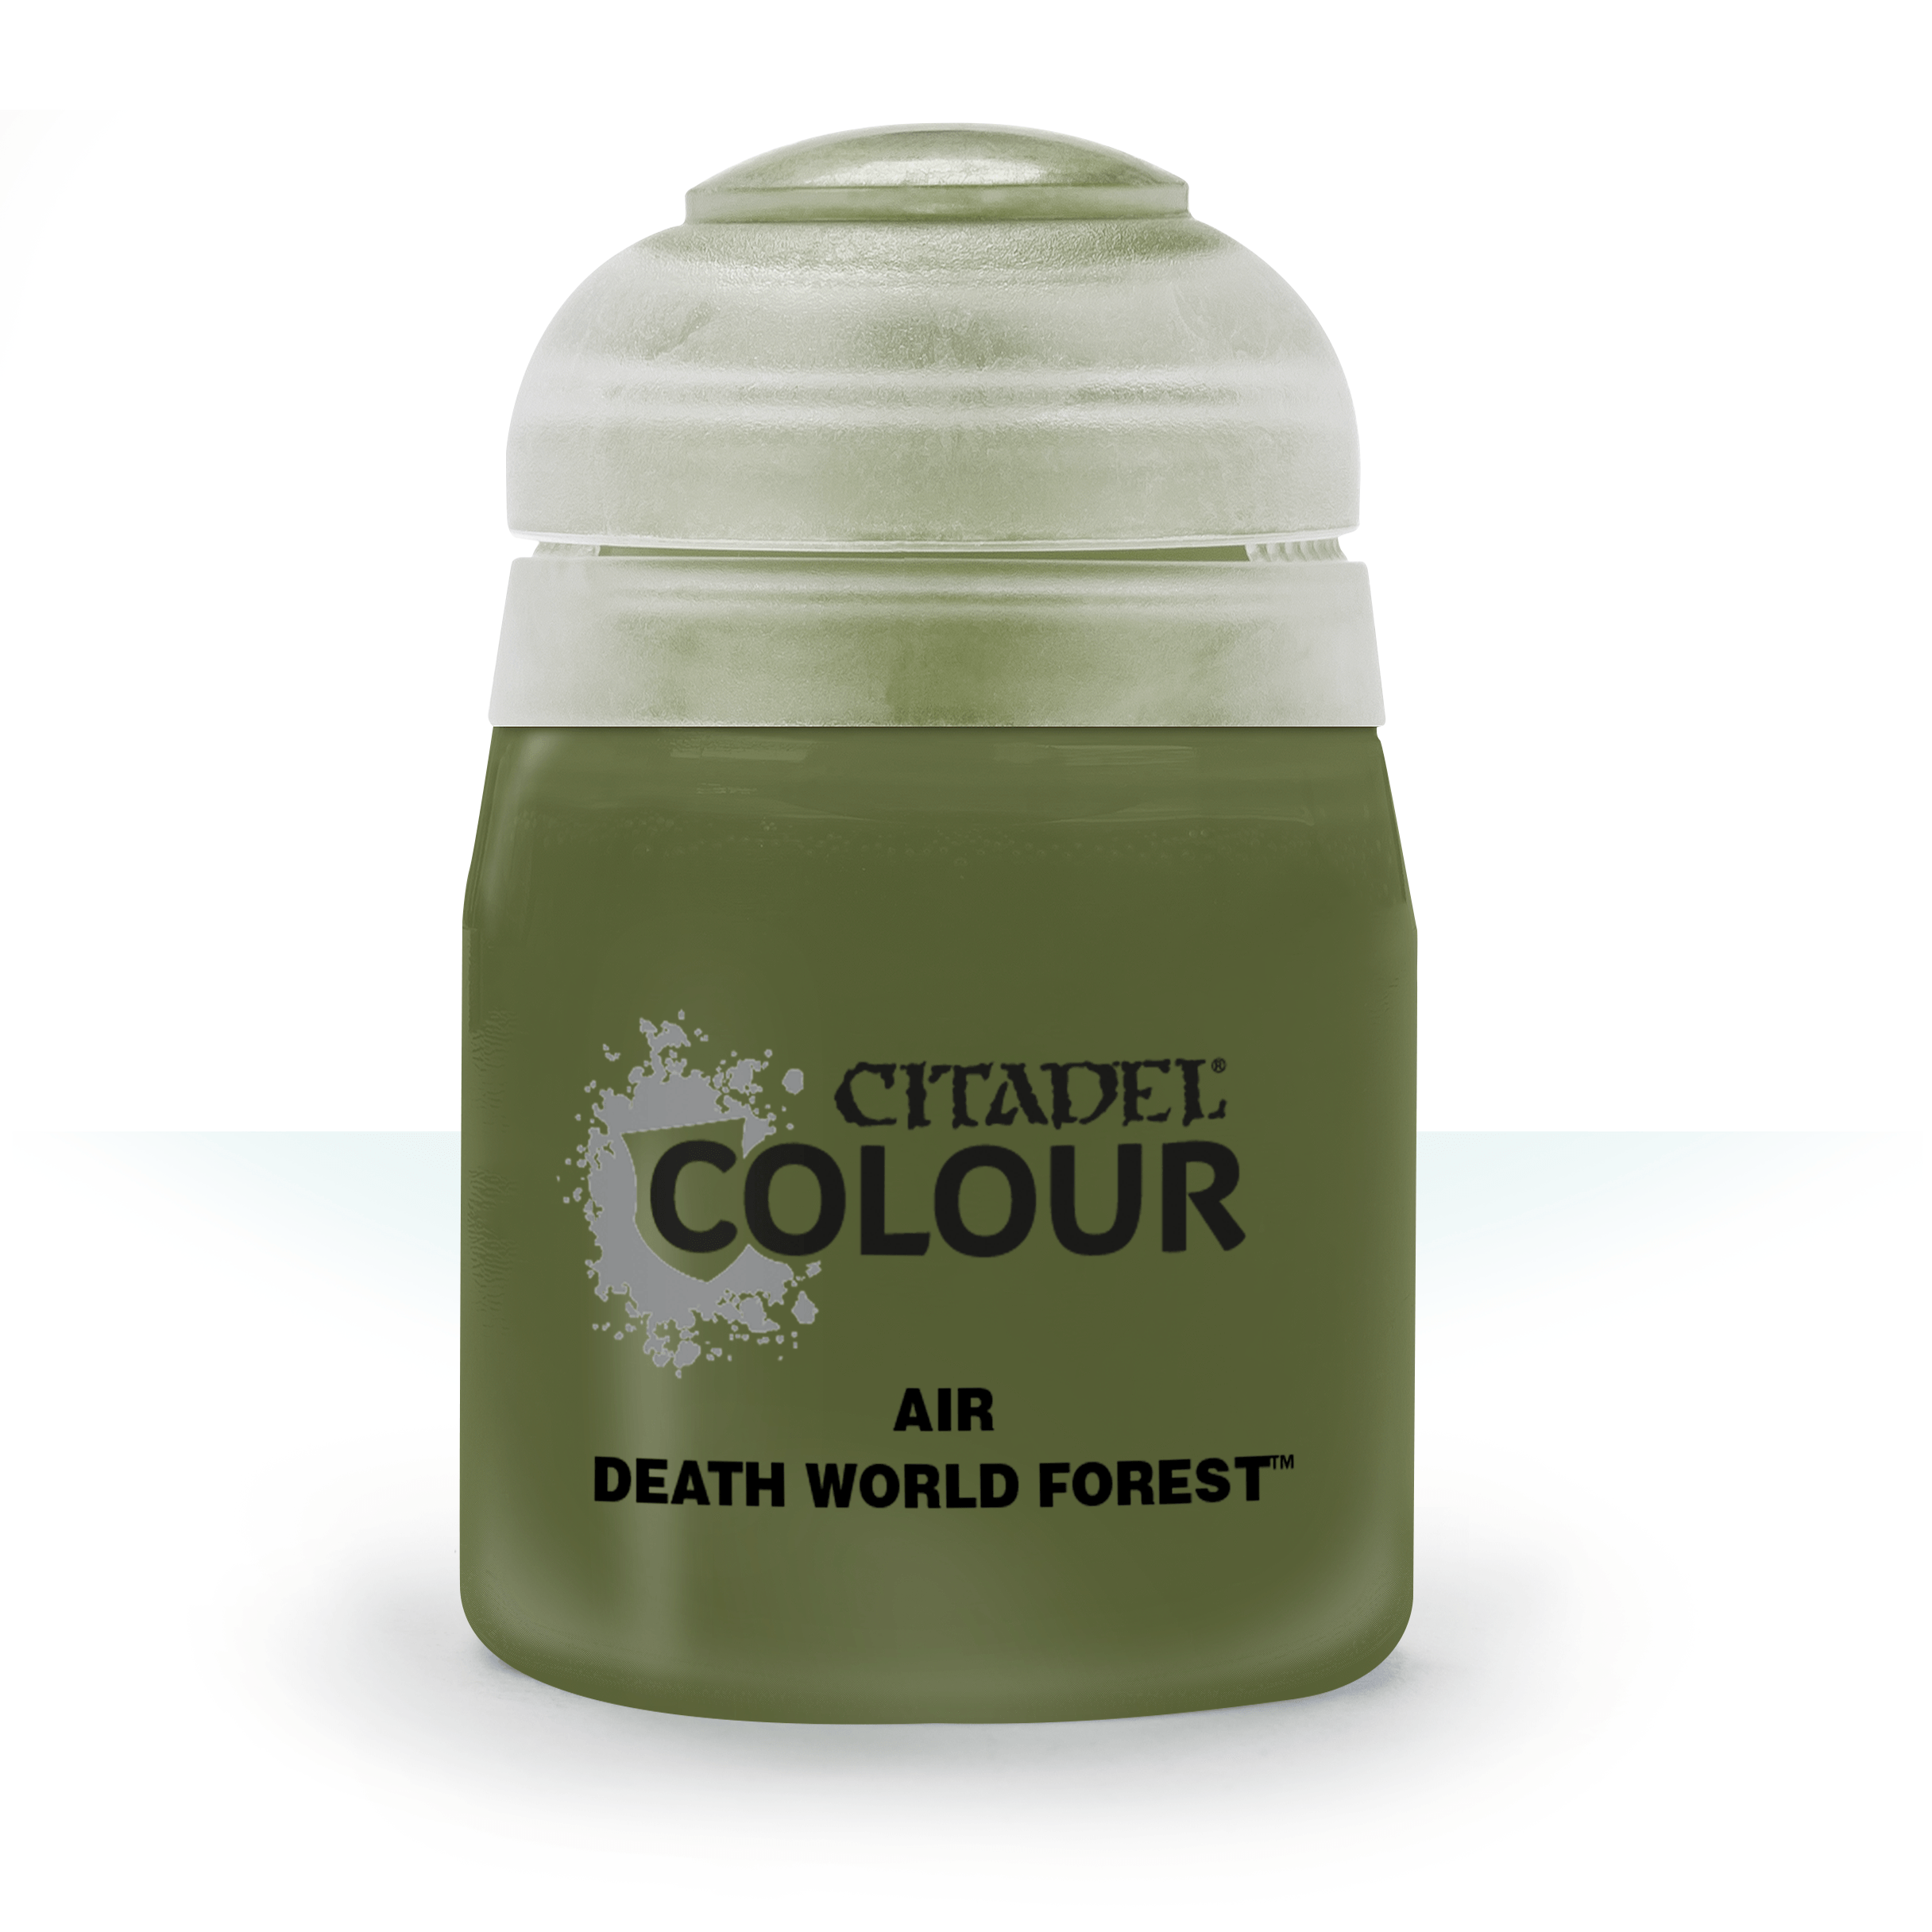 Citadel Airbrush Paints: Deathworld Forest Air (24ML)